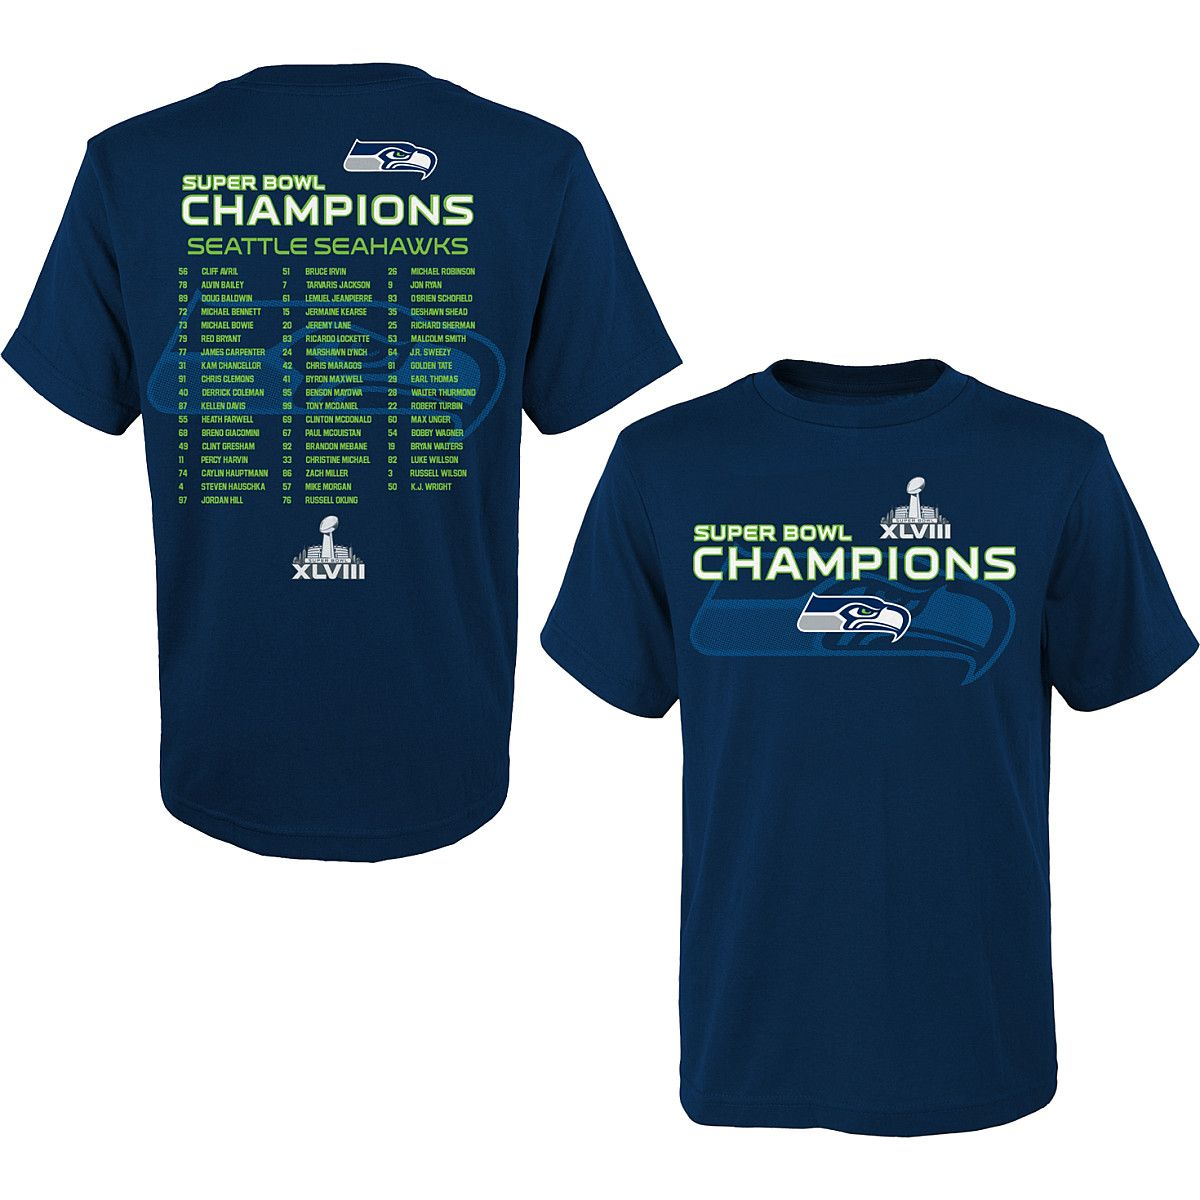 NFL Team Youth Apparel Seattle Seahawks 2013 Super Bowl